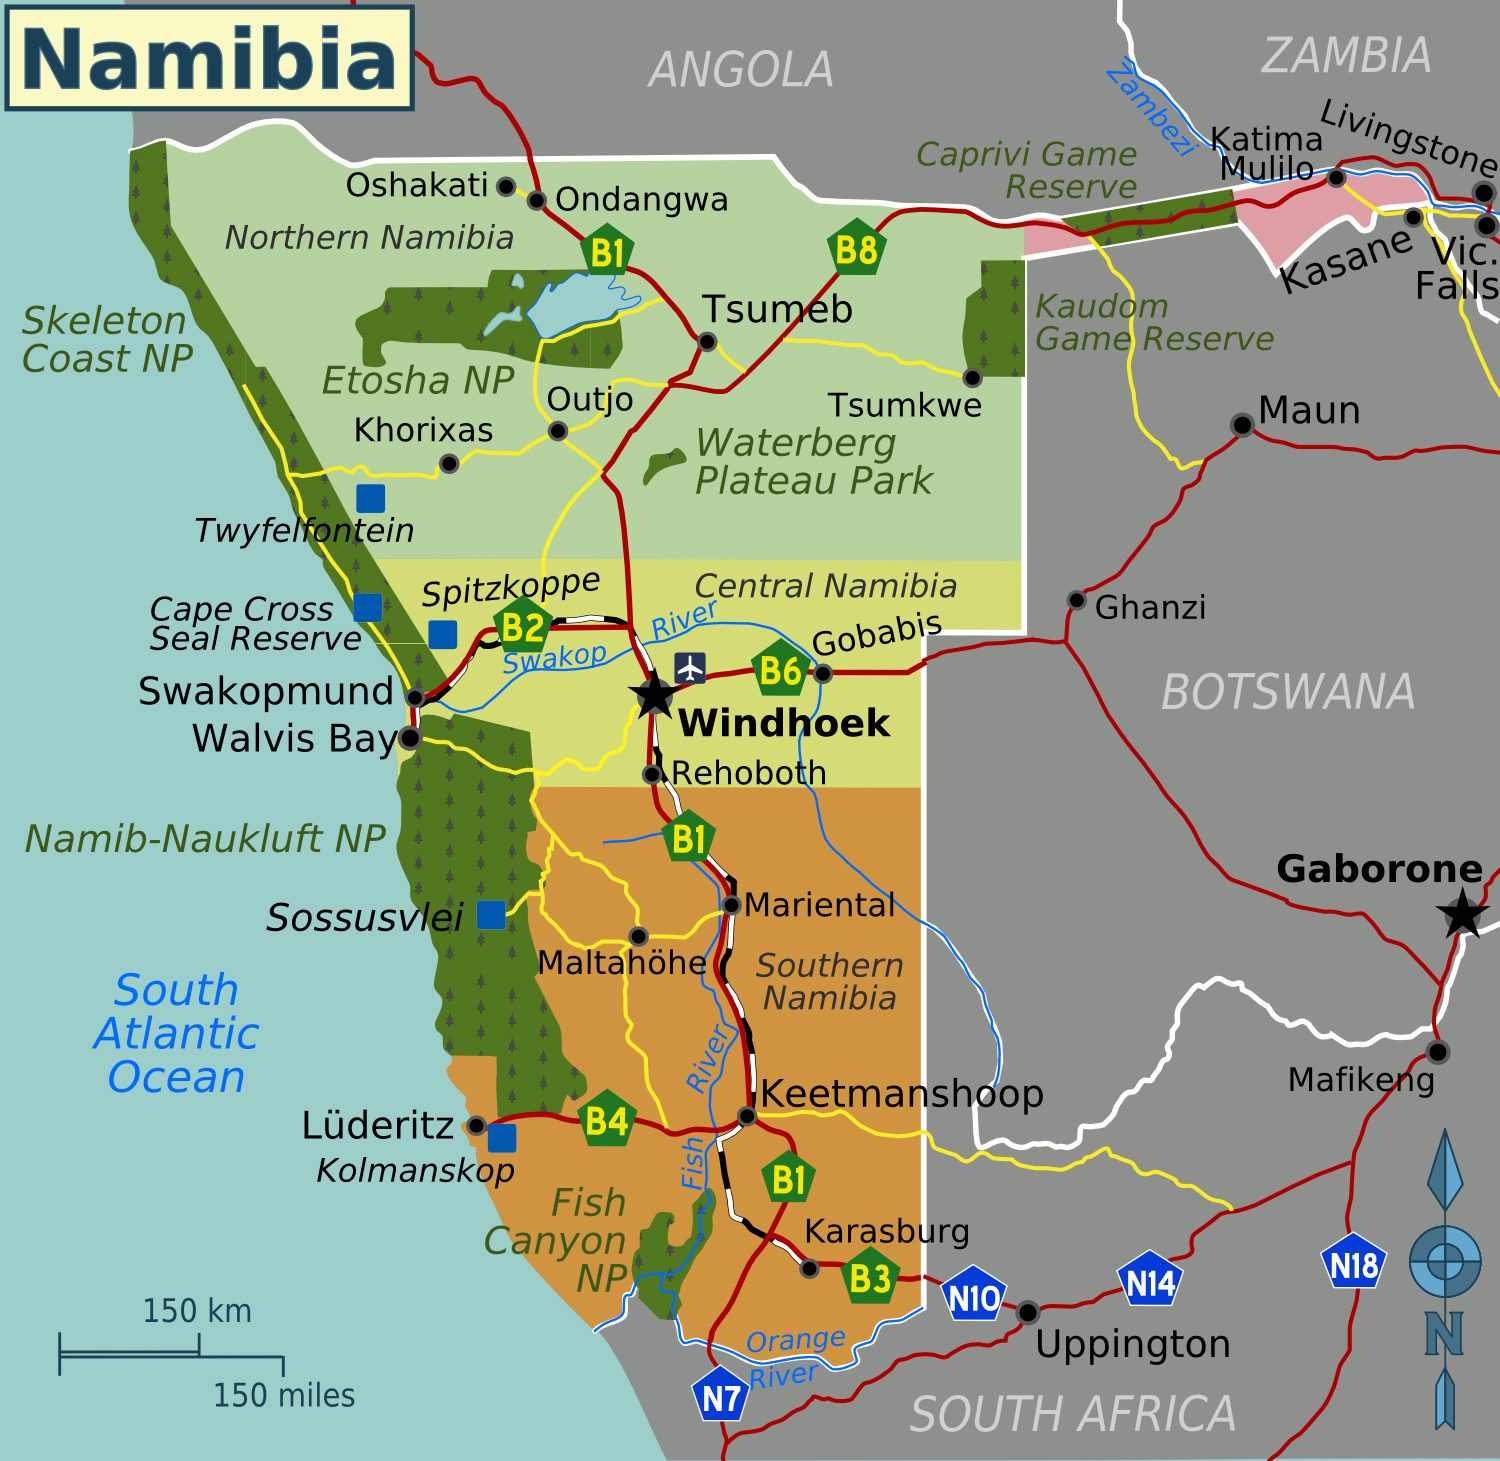 Detailed political map of Namibia with all cities and highways